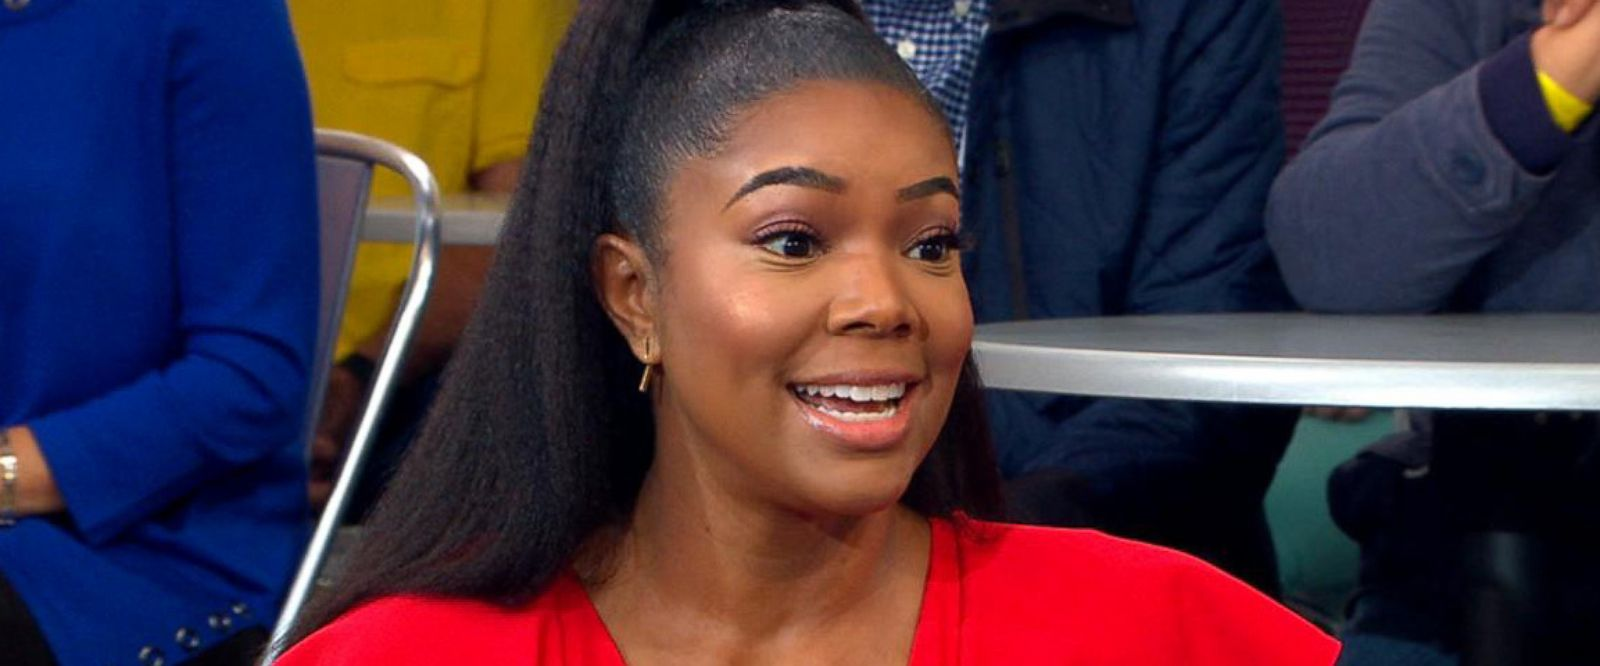 VIDEO: 'GMA' Hot List: Gabrielle Union says she 'finally felt like it was OK to be seen as vulnerable'